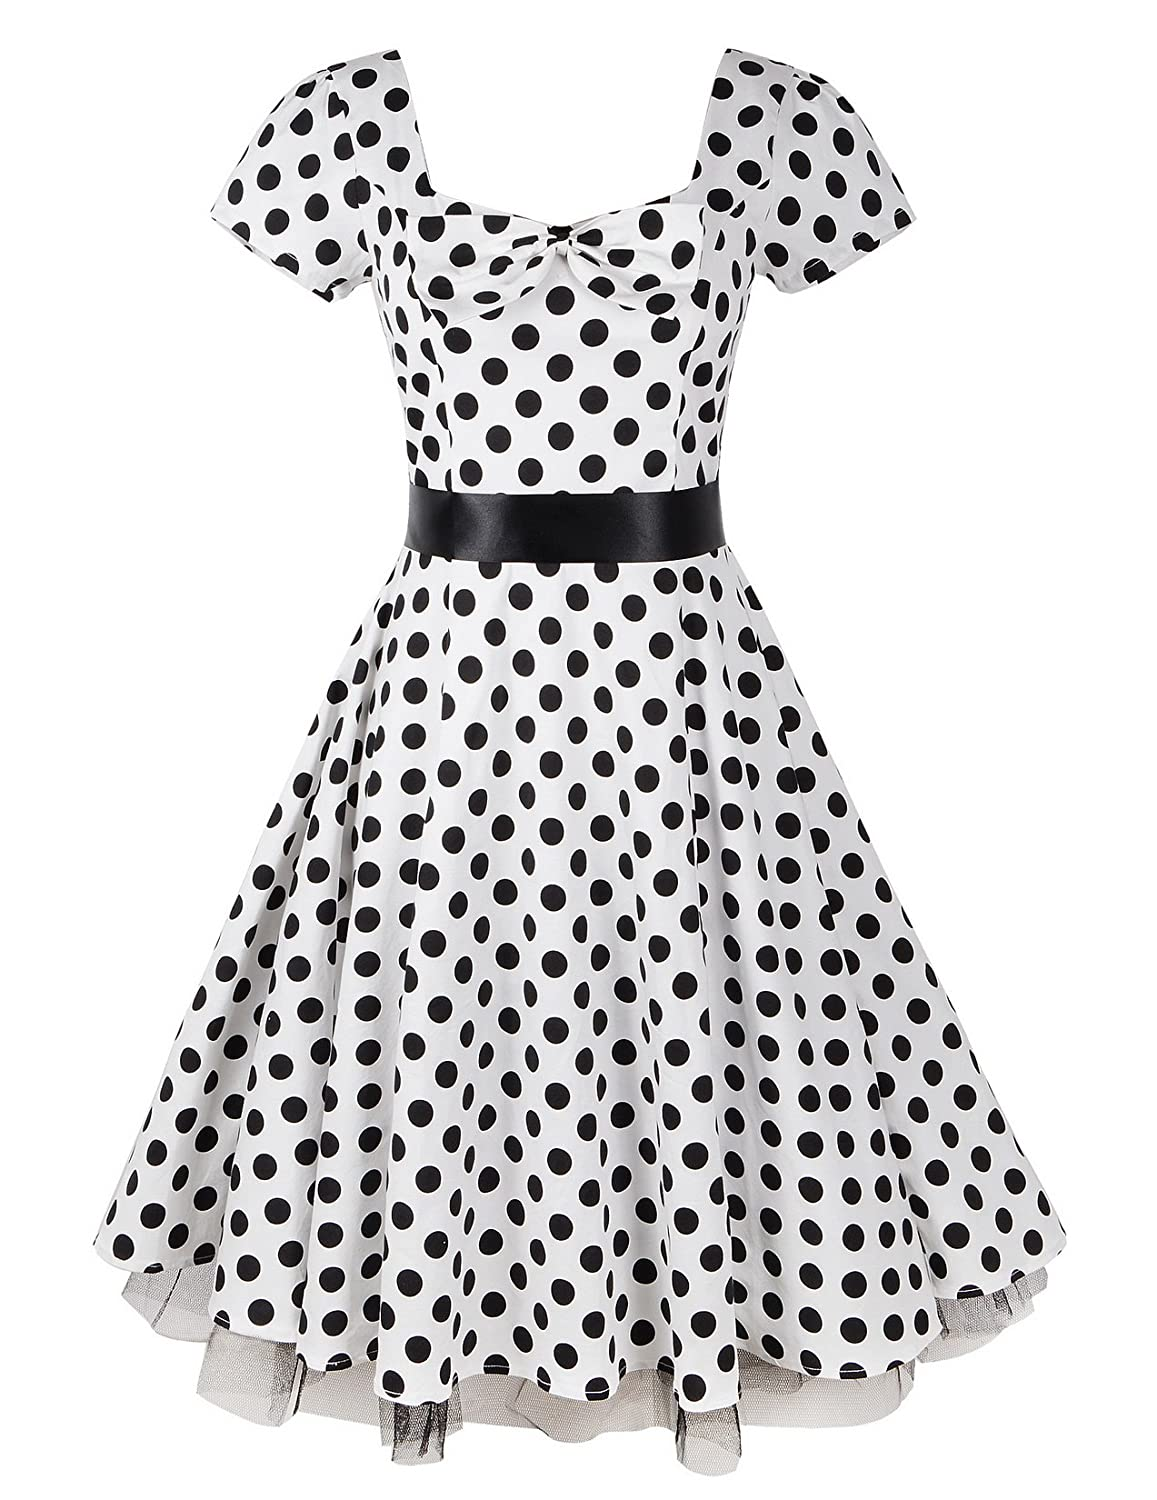 50s 60s Rockabilly Vintage Swing Party Prom Cocktail Dress